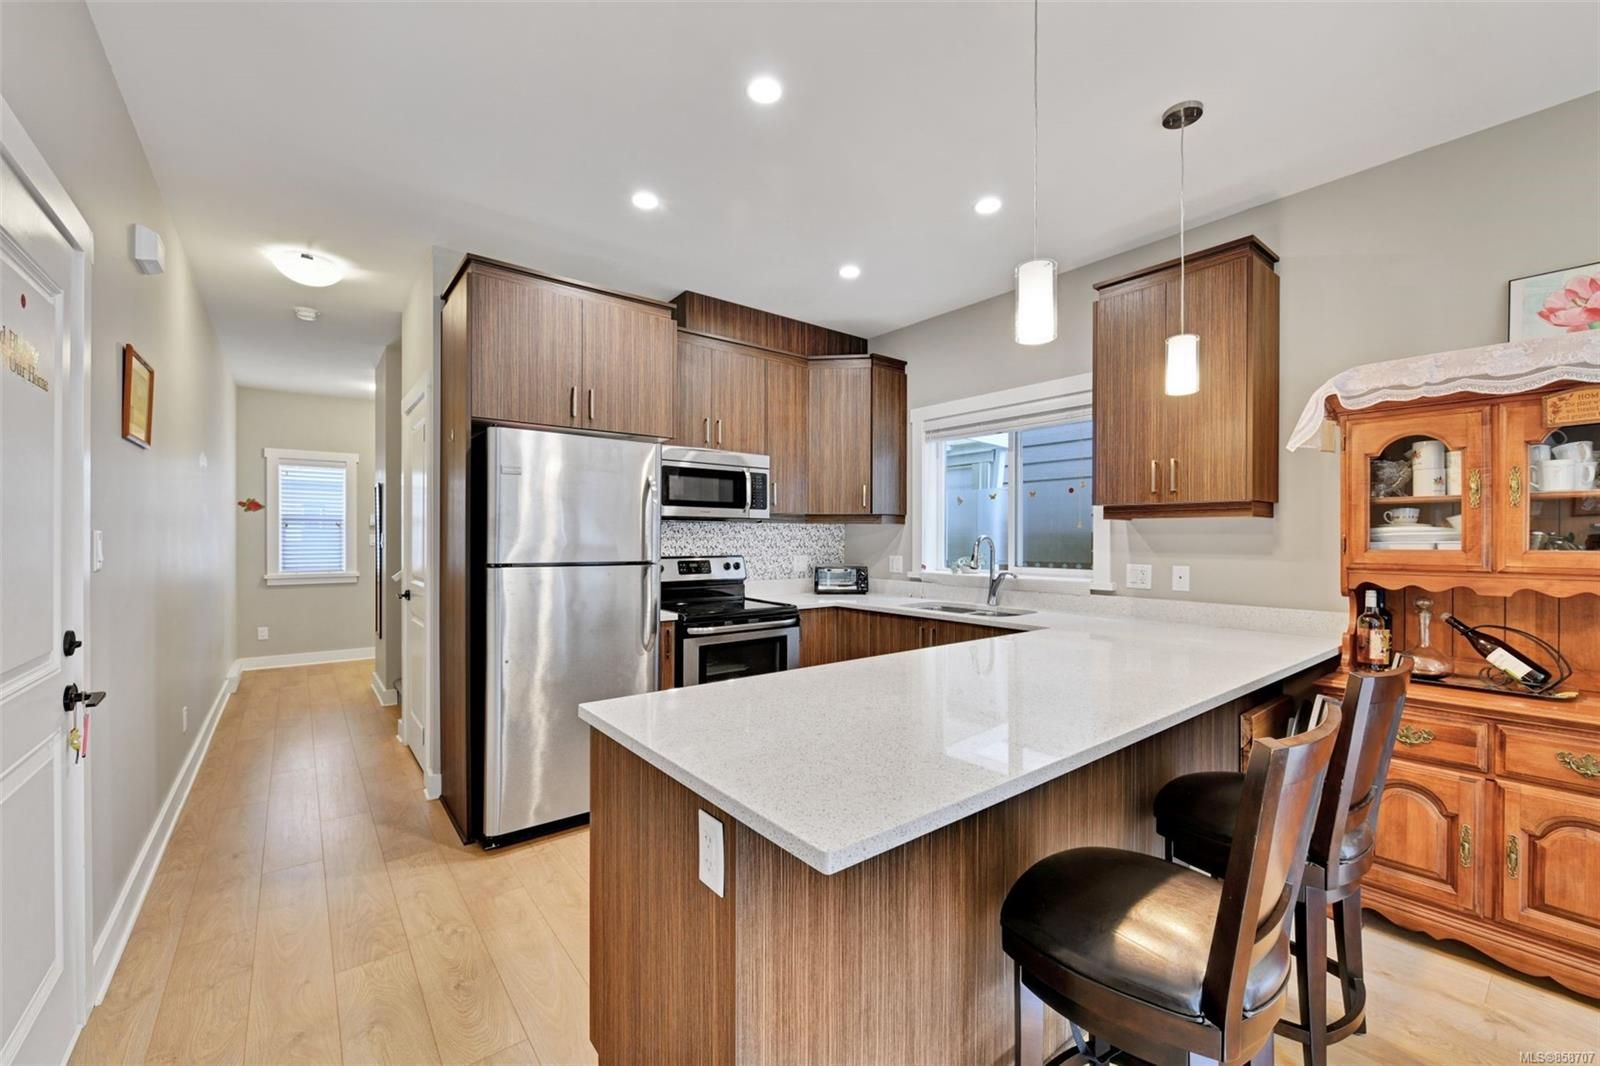 Photo 7: Photos: 1262 McLeod Pl in : La Happy Valley House for sale (Langford)  : MLS®# 858707